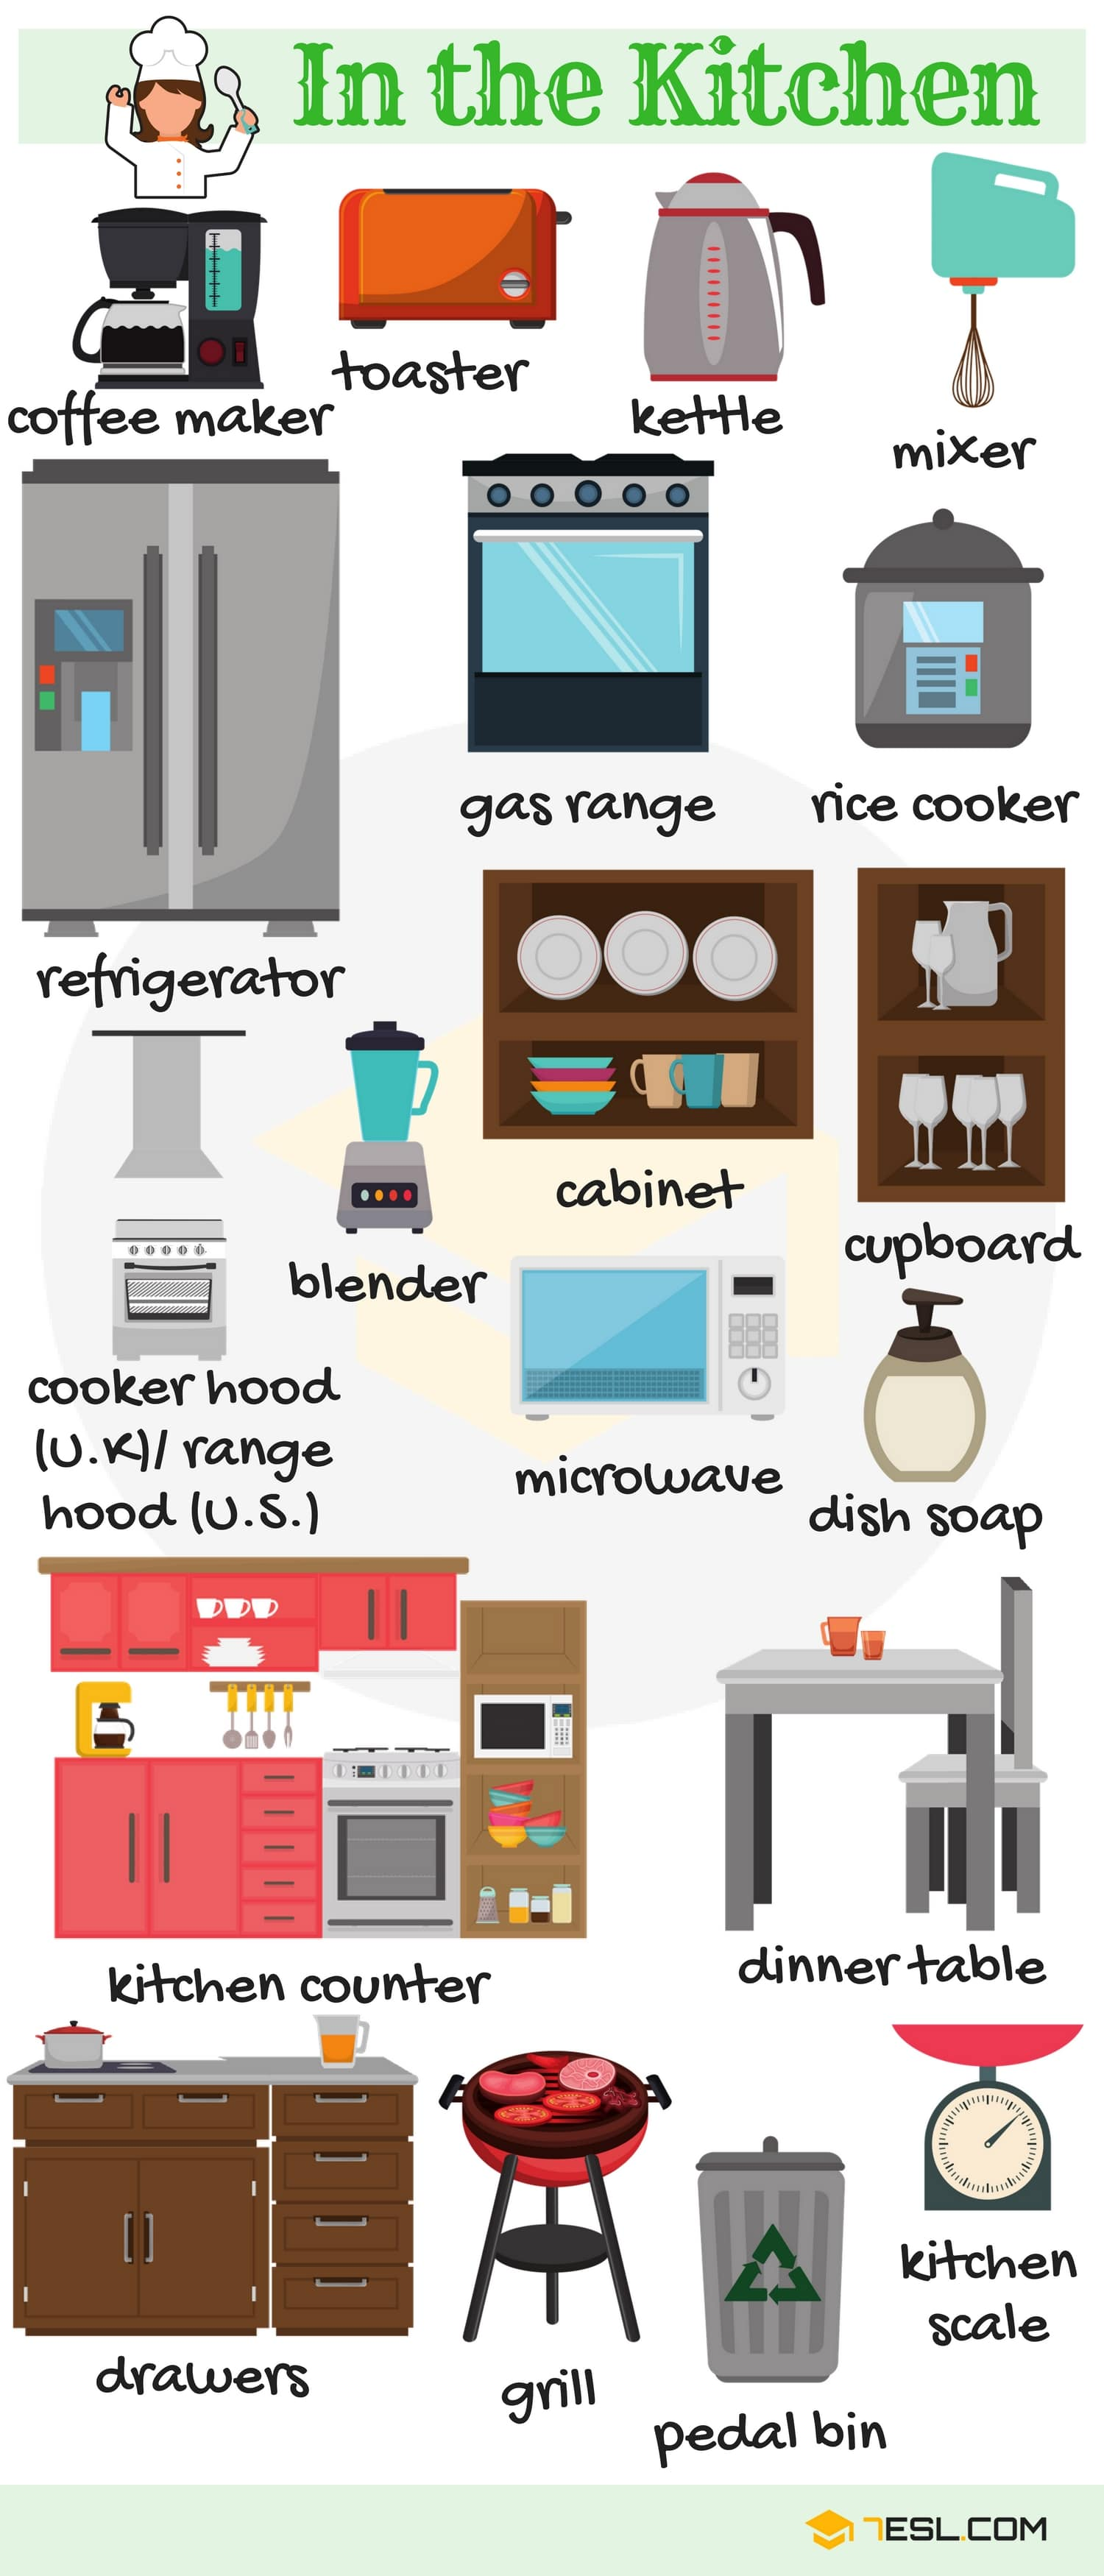 In the Kitchen Vocabulary in English (with Pictures)